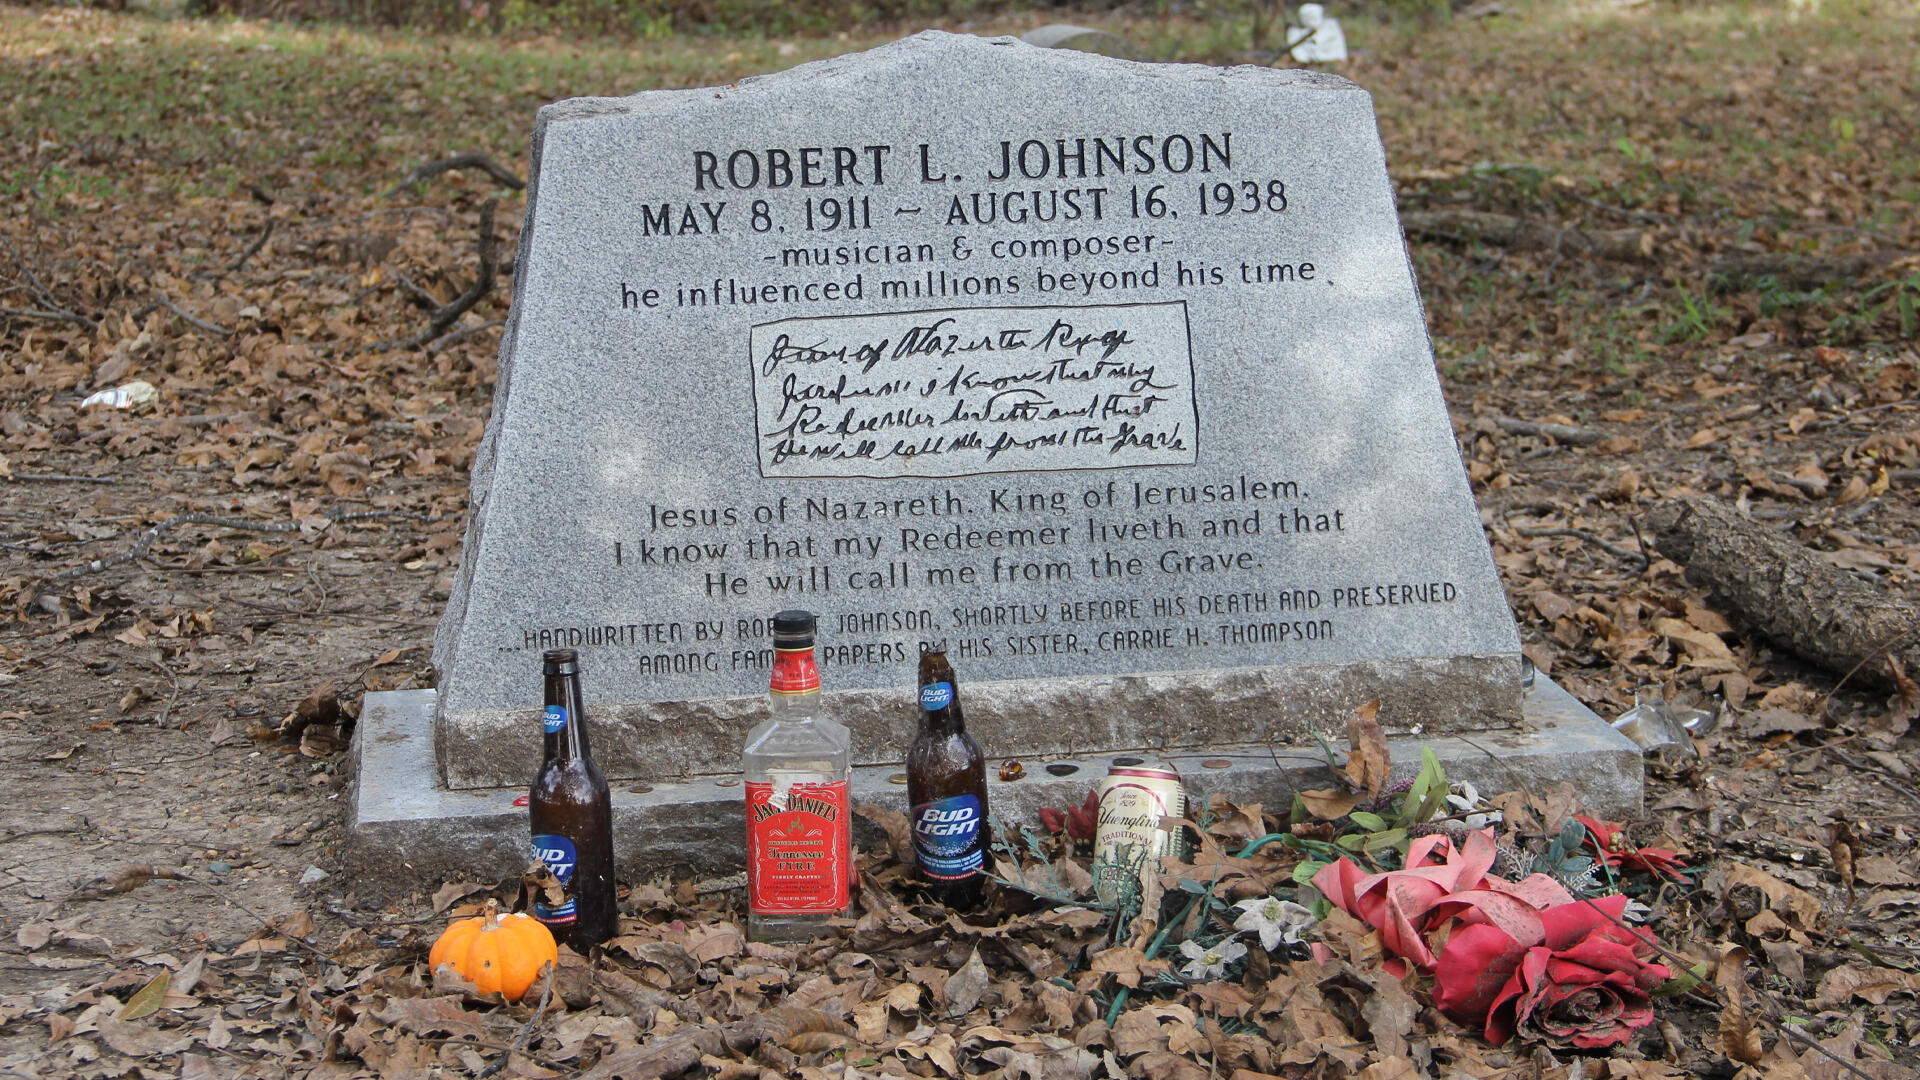 La tombe de Robert Johnson à Greenwood (Mississippi).